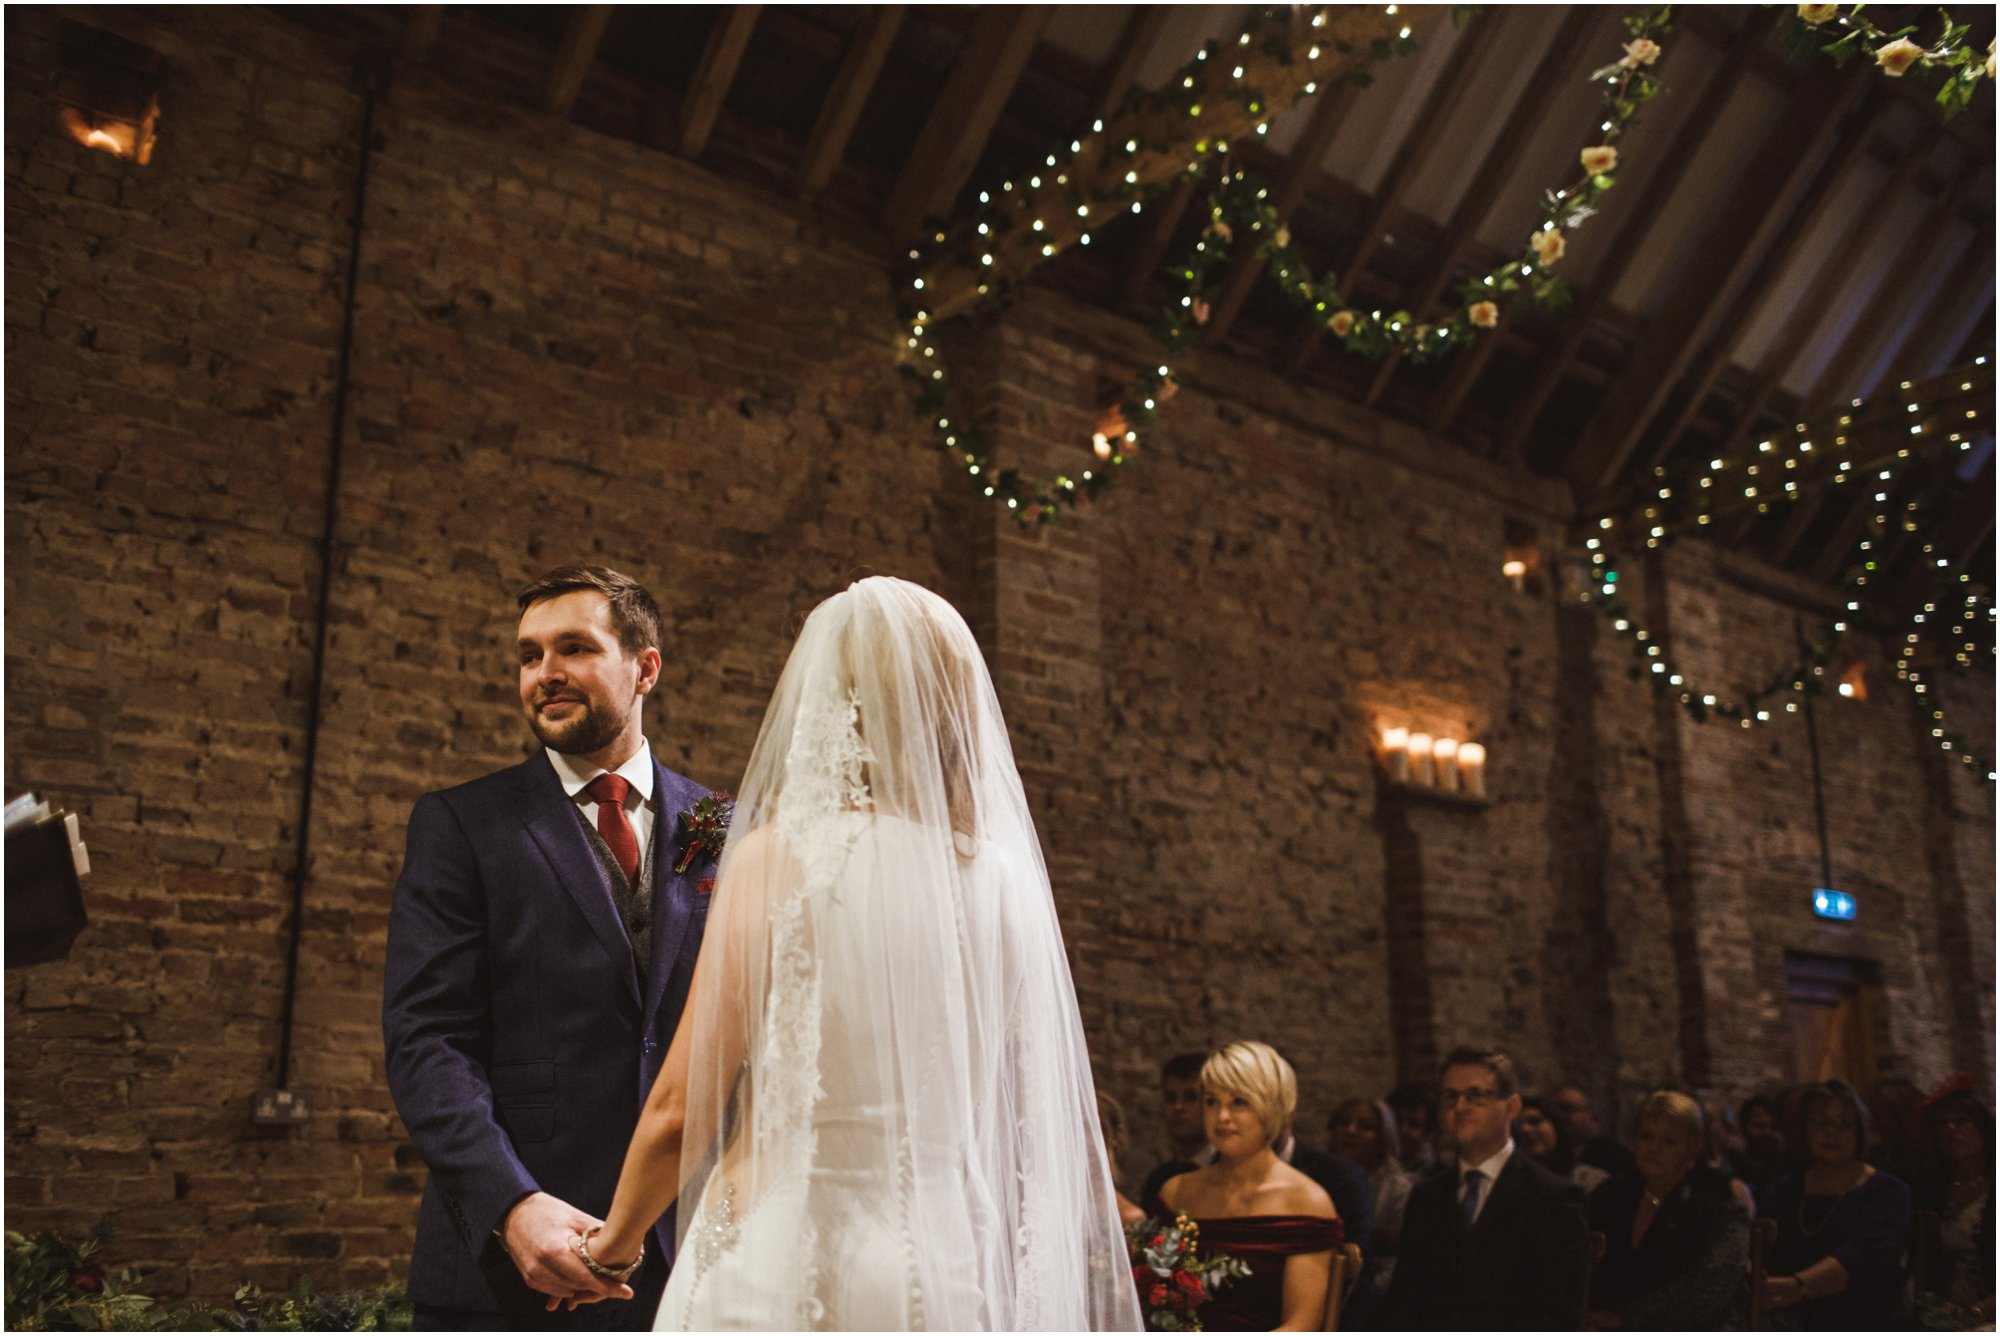 Barmbyfields Barn Wedding York_0044.jpg